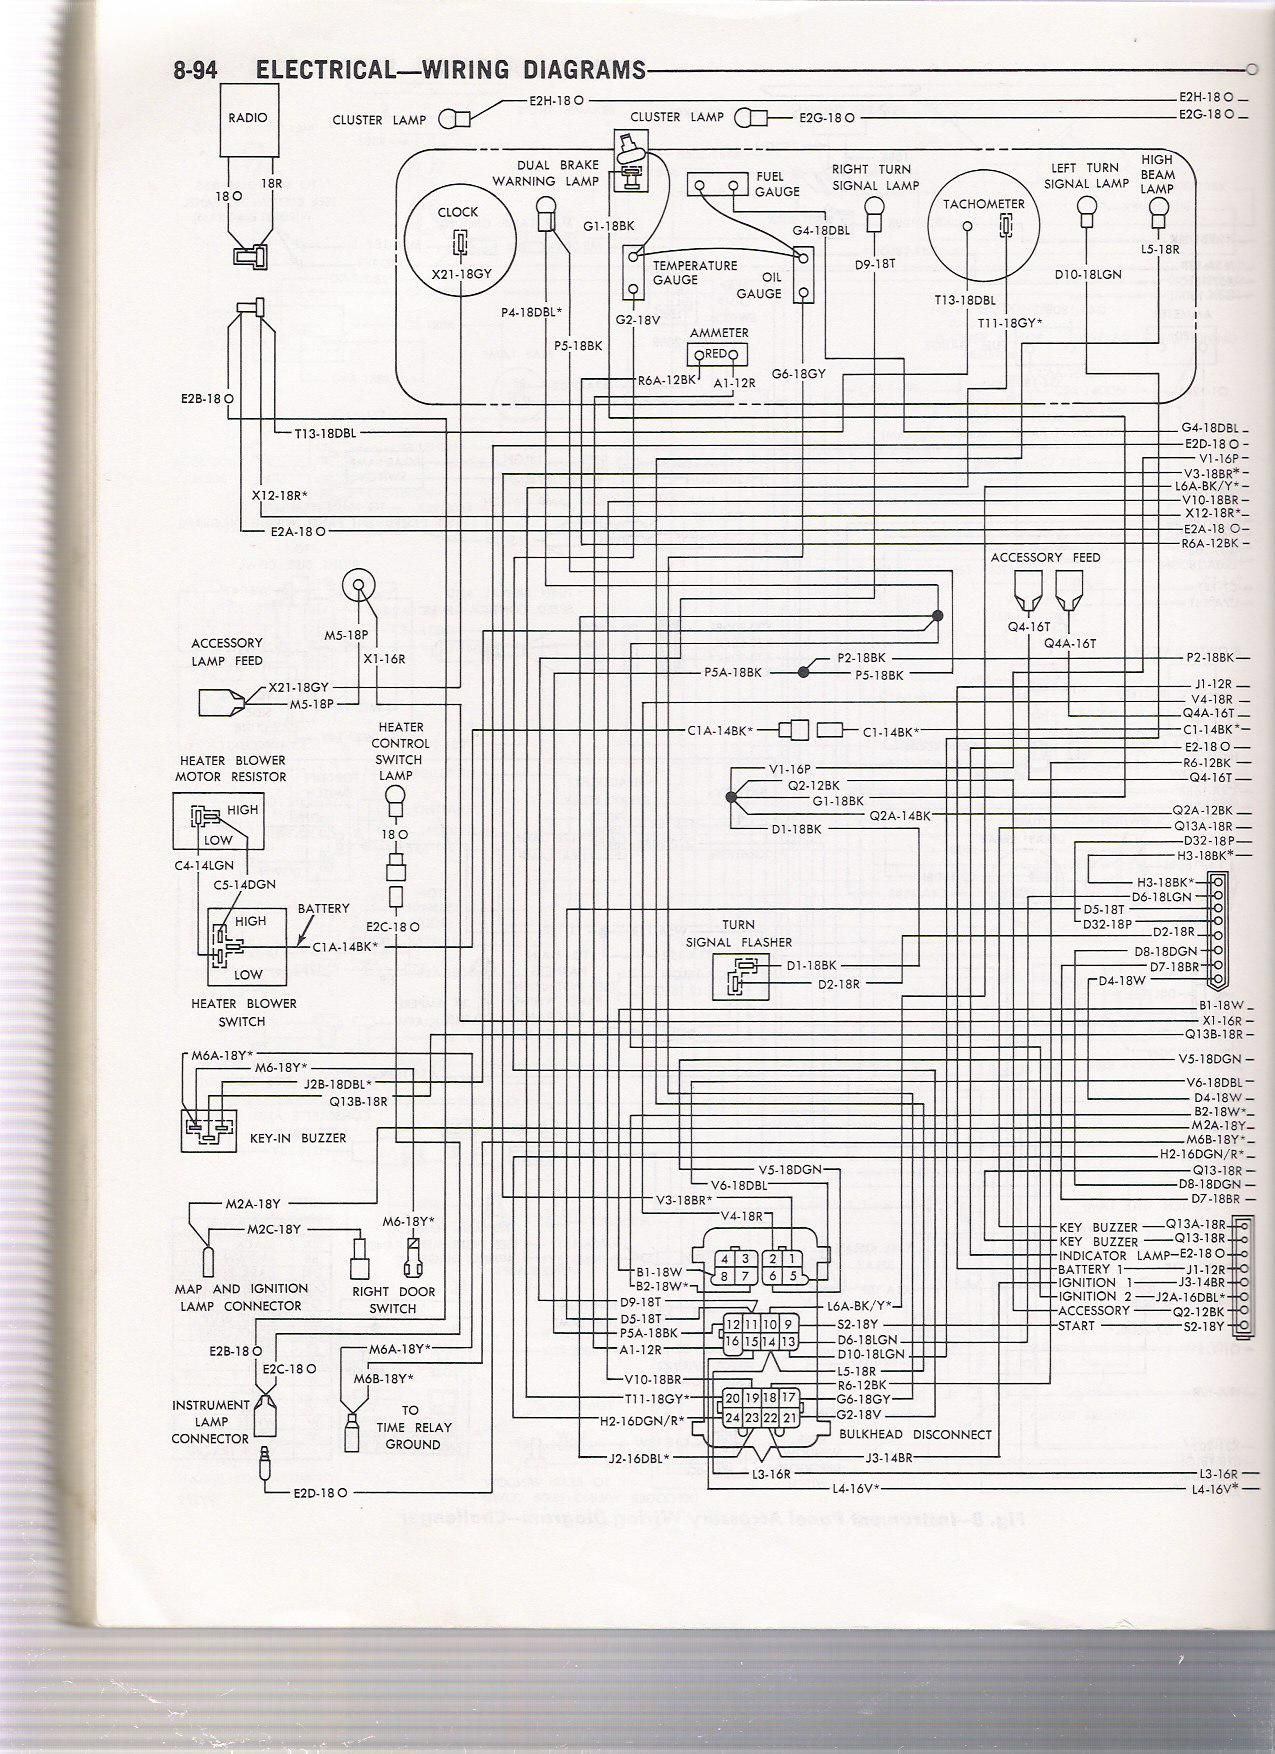 wiring diagram e body light switch challenger cuda 1970